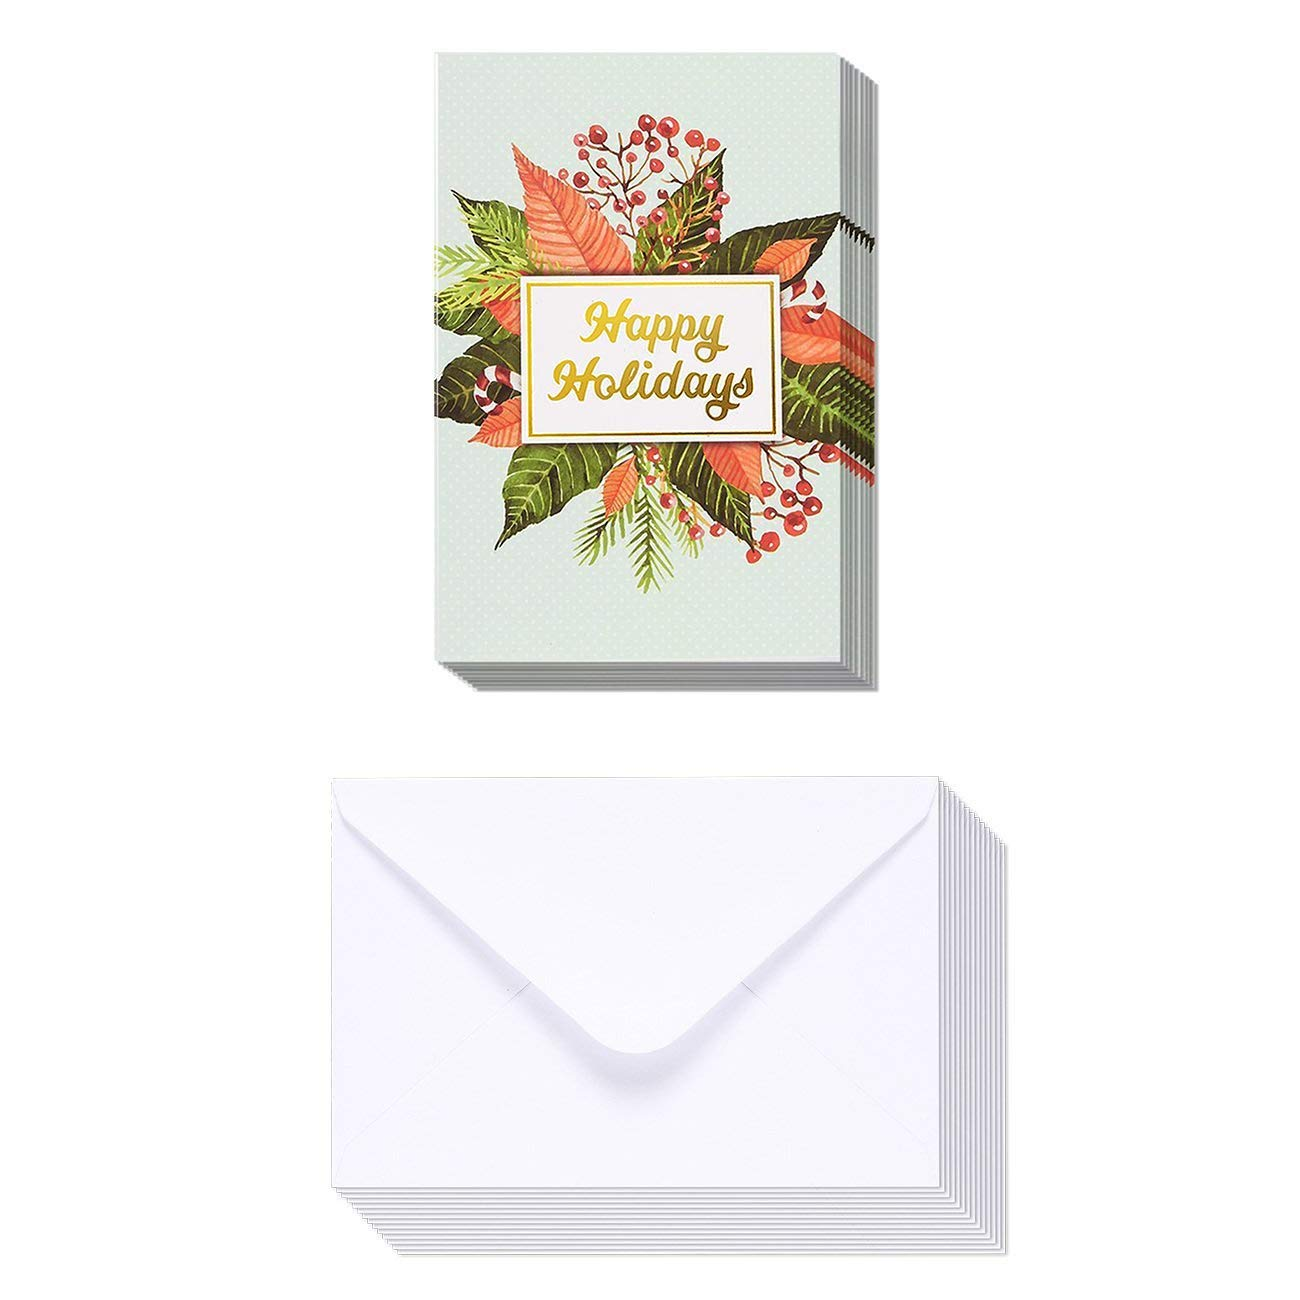 4 x 6 Inches 48-Pack Merry Christmas Greeting Cards Bulk Box Set Winter Holiday Xmas Greeting Cards with Mistletoe Design and Gold Foil Accents Envelopes Included